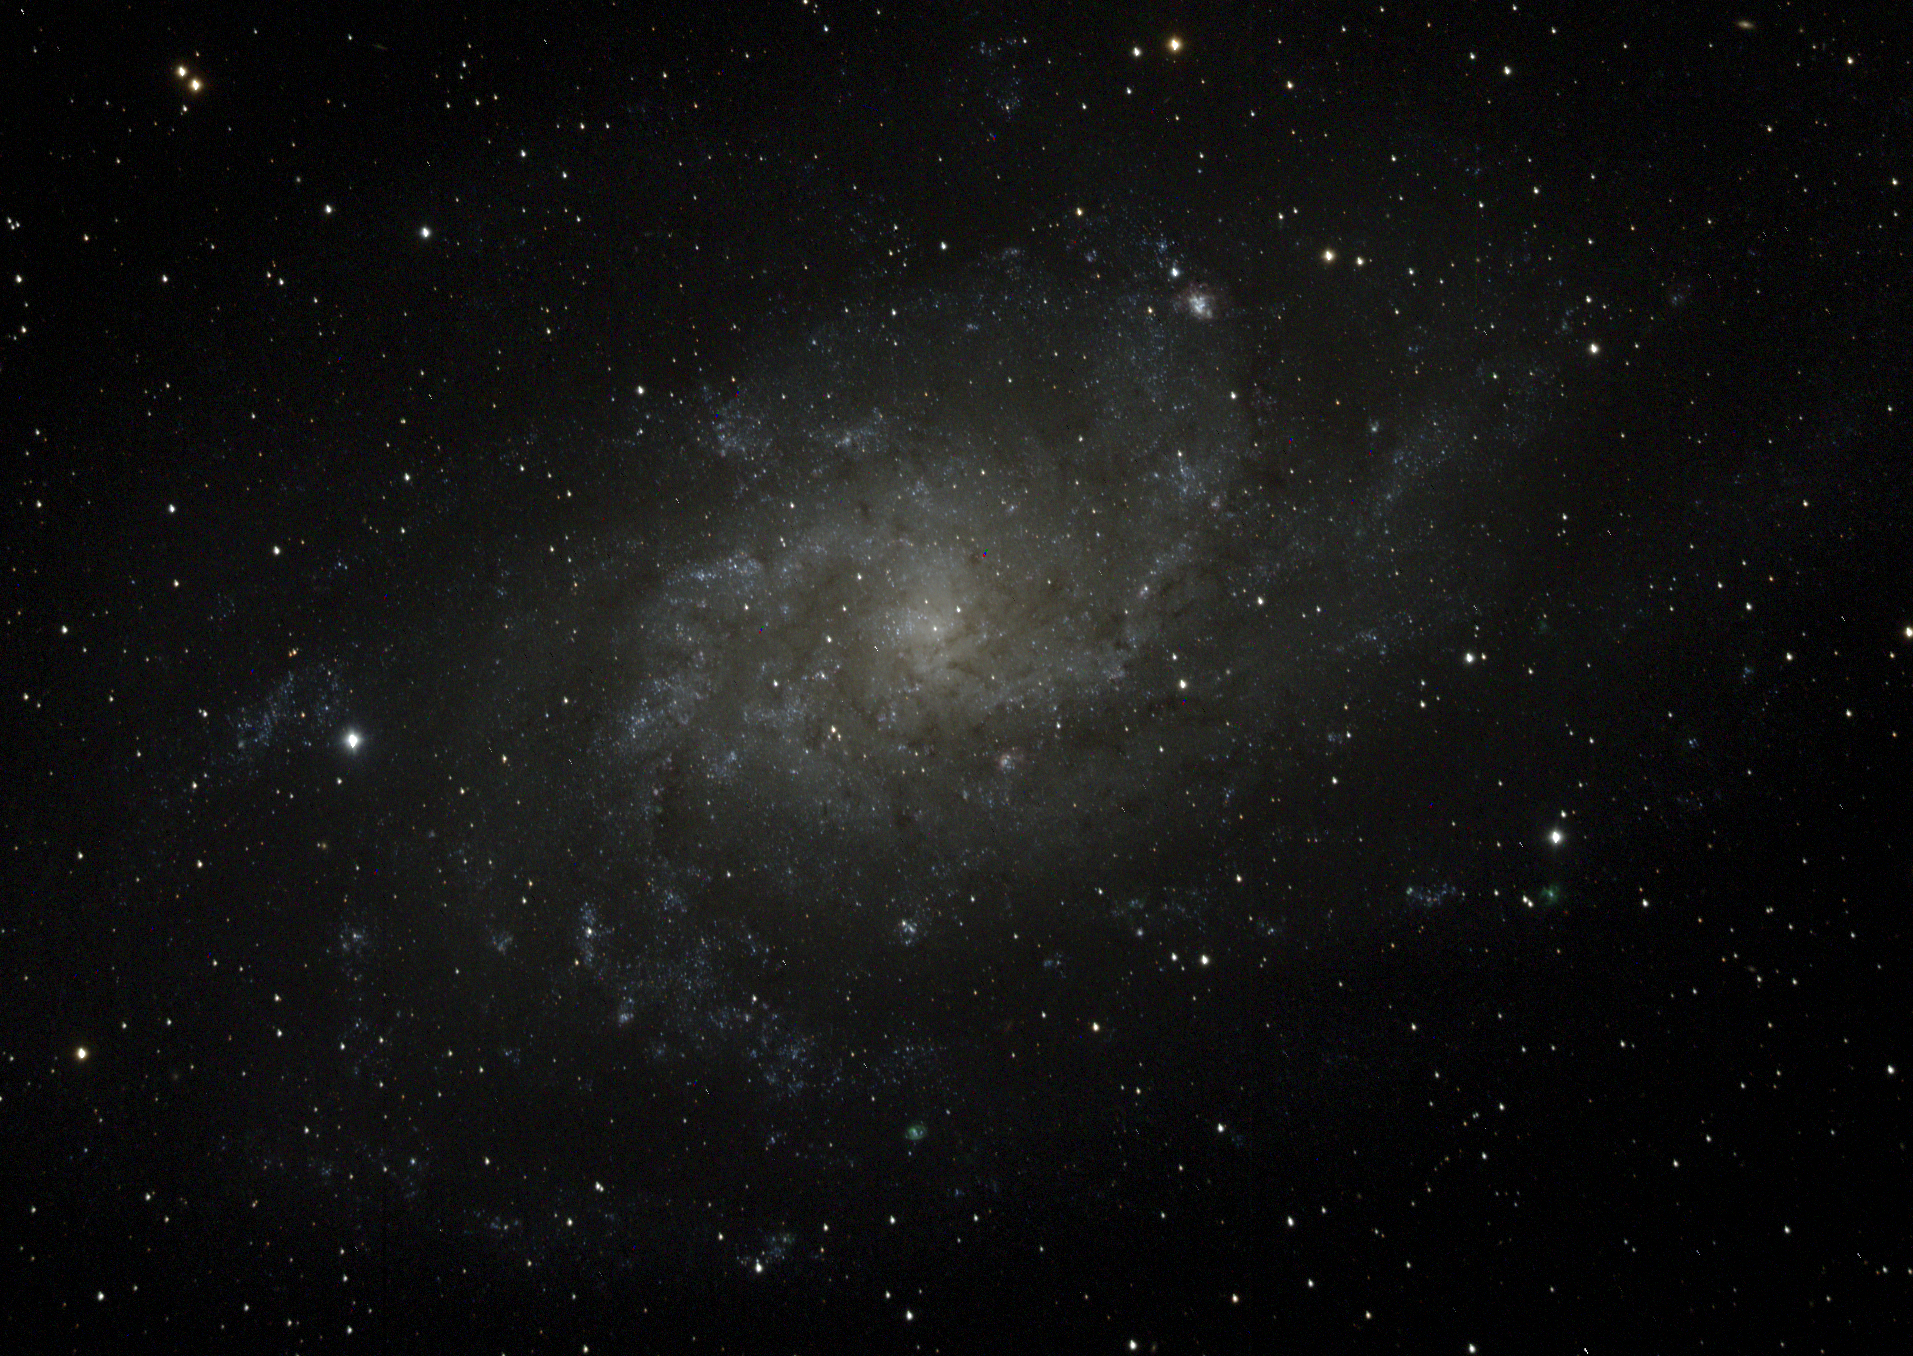 M33 (iTelescope version)